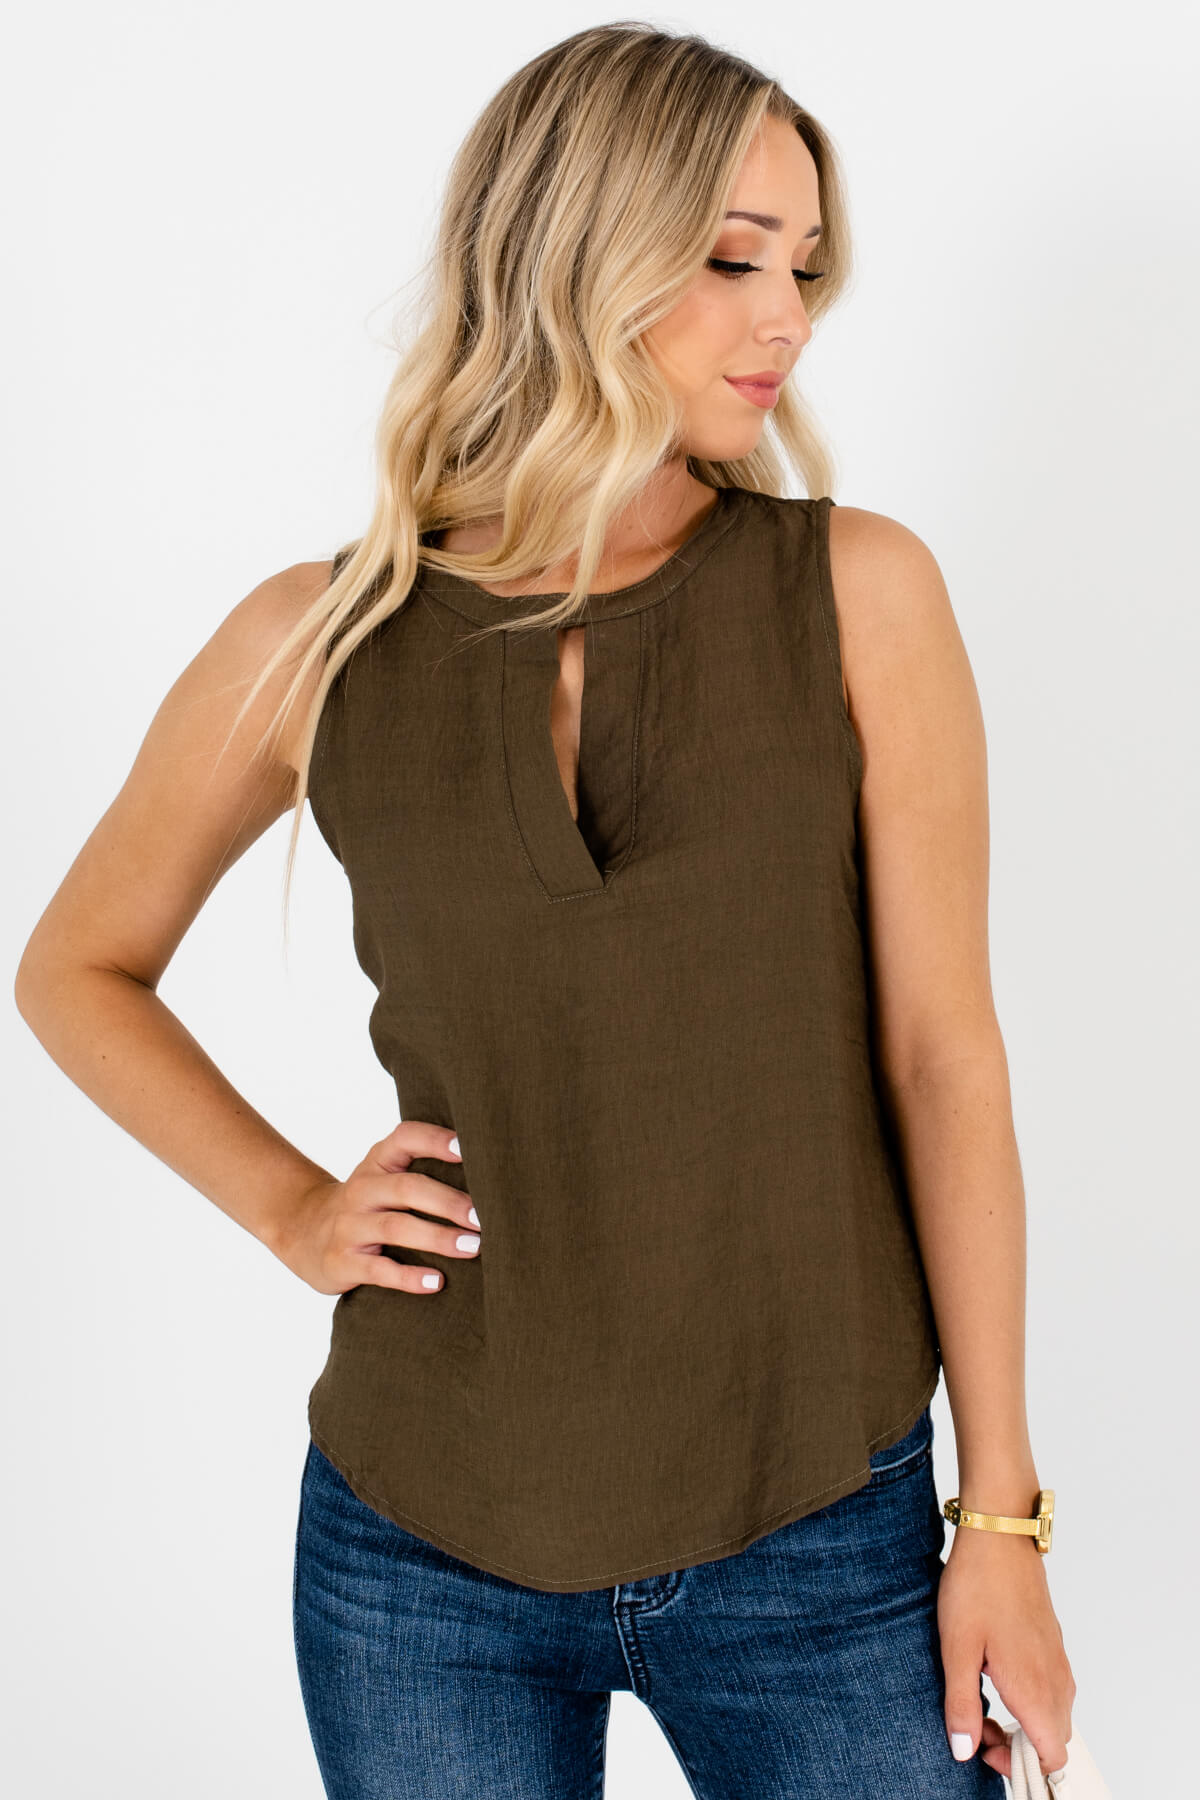 Olive Green Cutout Tank Tops Affordable Online Boutique Fashion